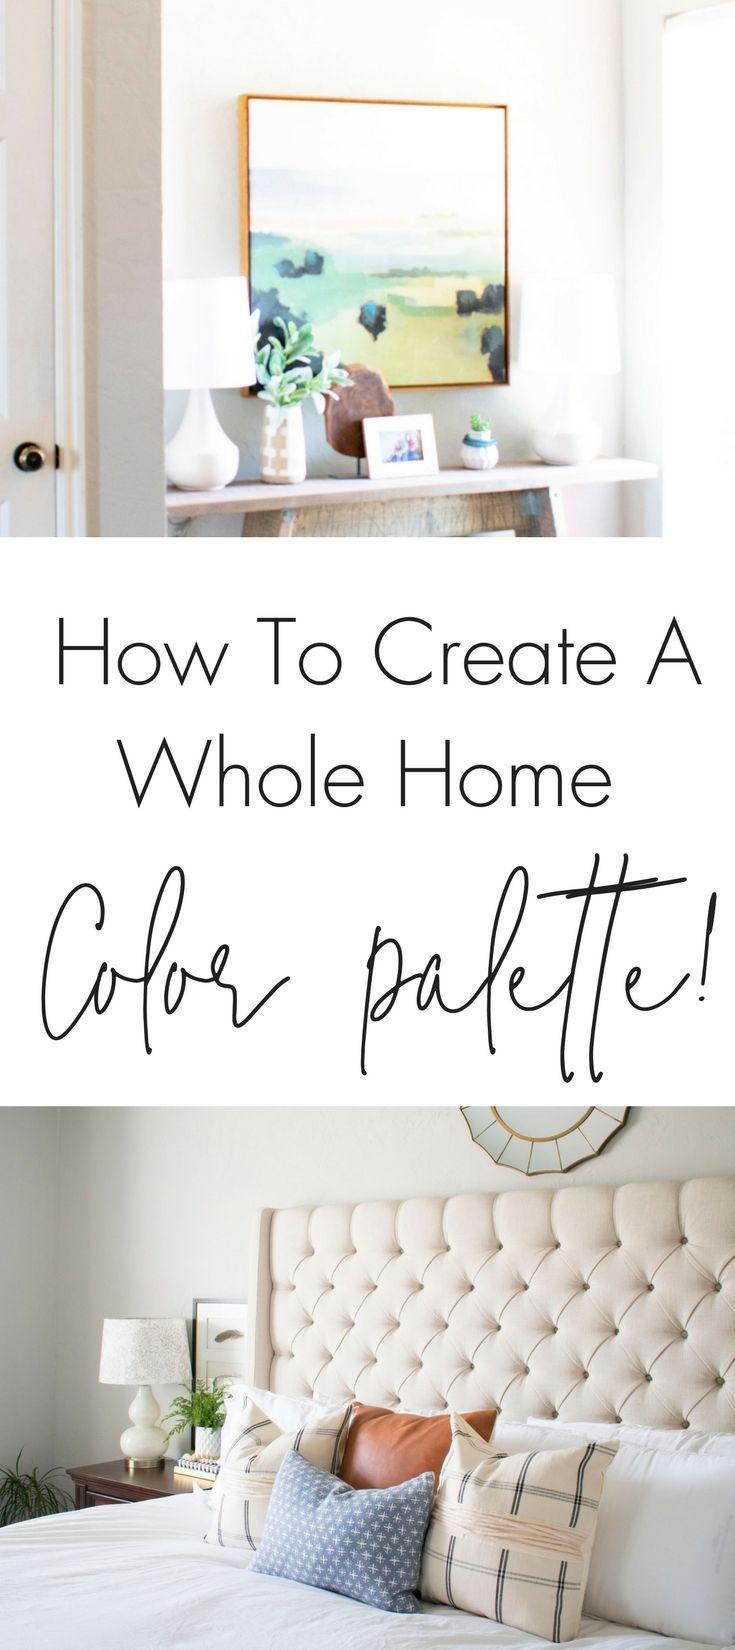 How to create a whole home color palette: This step by step tutorial will help you choose a whole home color palette and teach you how to create a cohesive home using color, these tips will make decorating so easy!  #paintcolors #paintcolorideas #decoratingideas #homepaintcolors